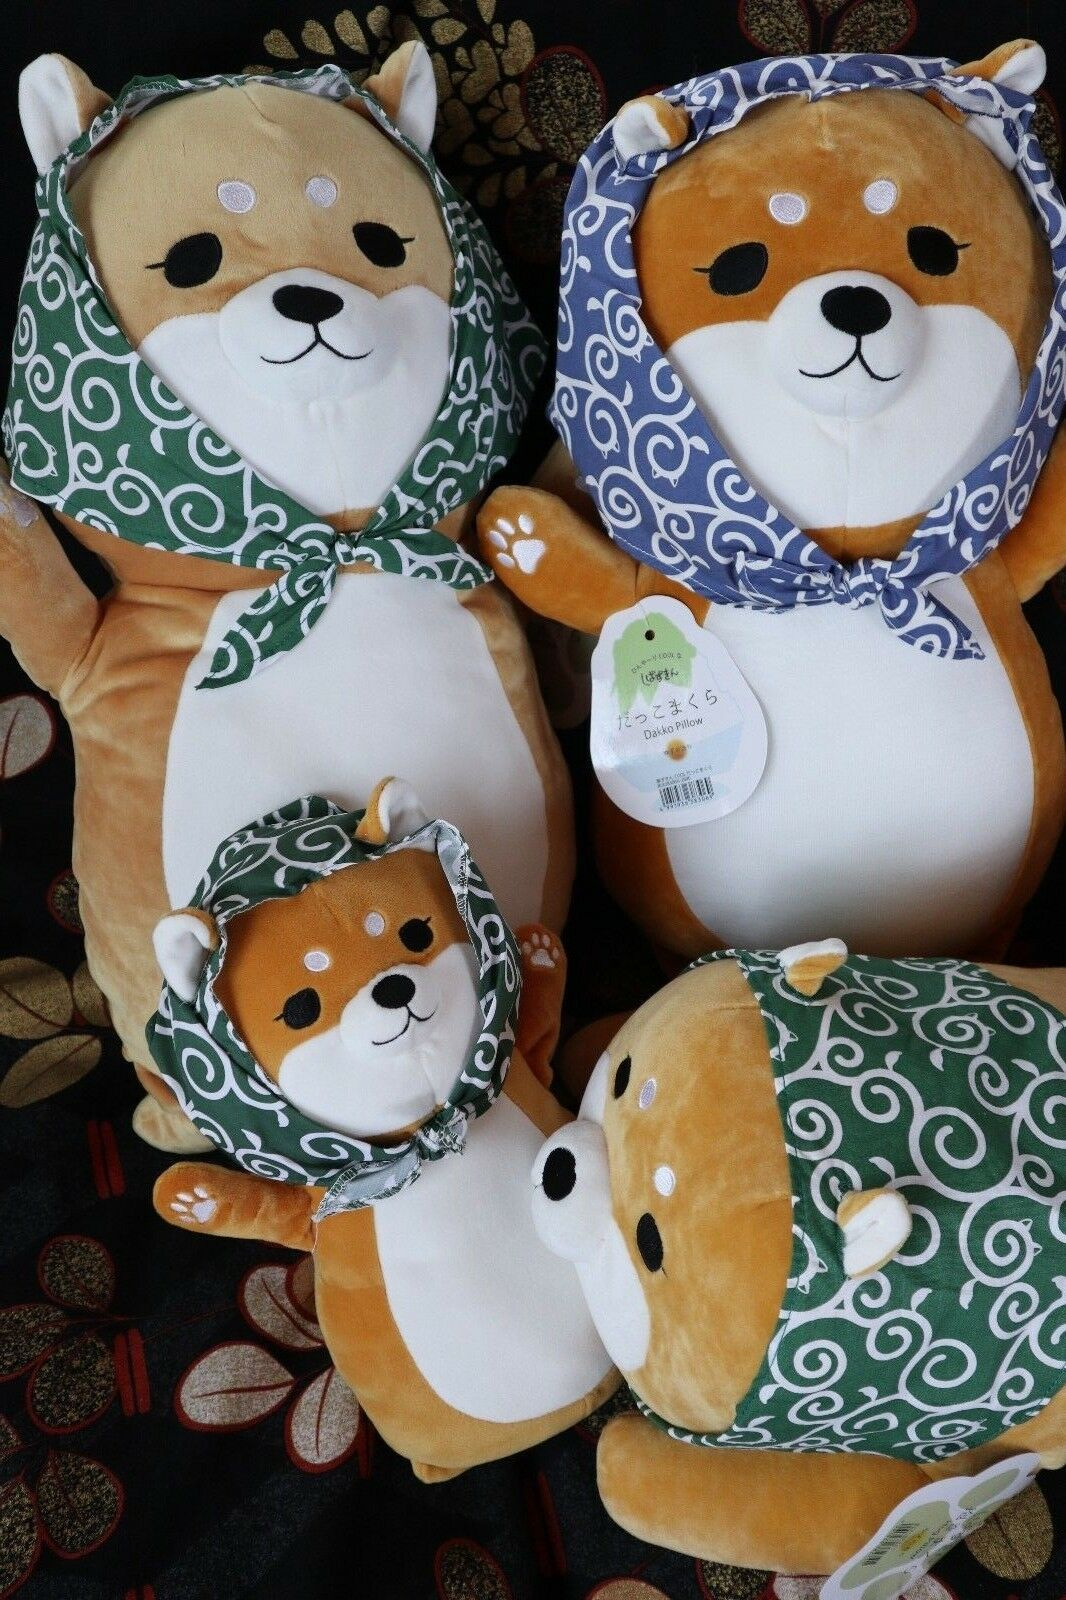 Shiba dog dog dog Shiba inu Body pillow hug Grün or Blau very cute & Citron fragrance a273b7